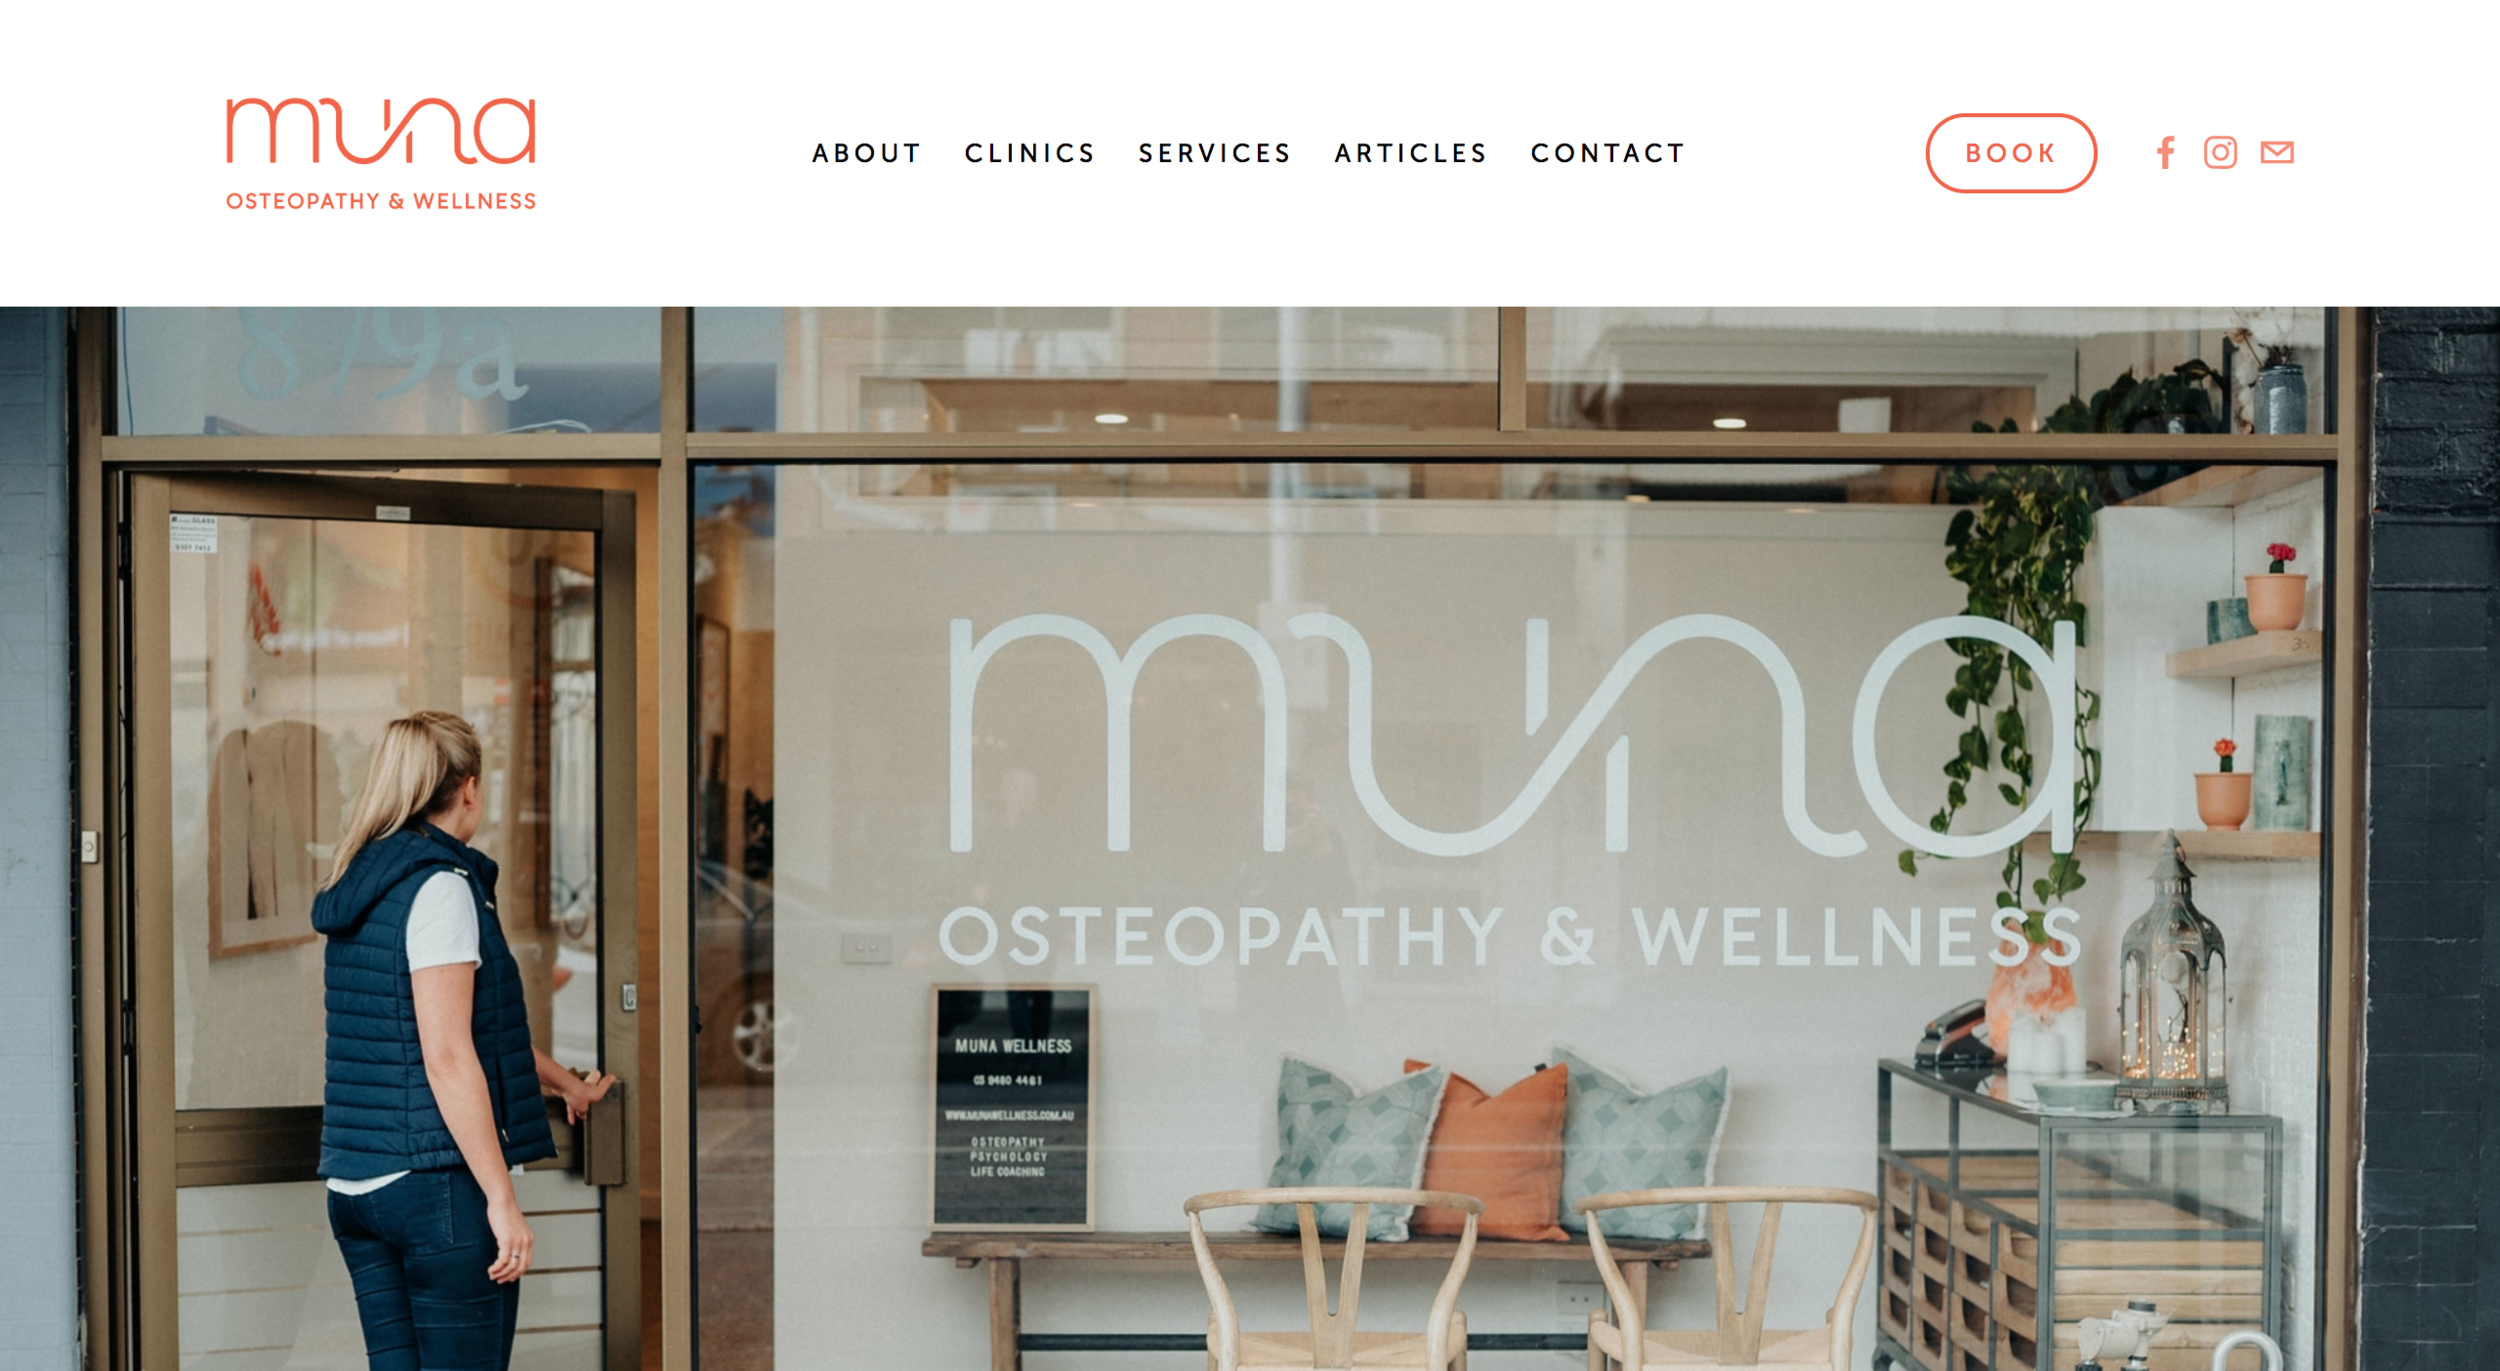 Muna Osteopathy & Wellness